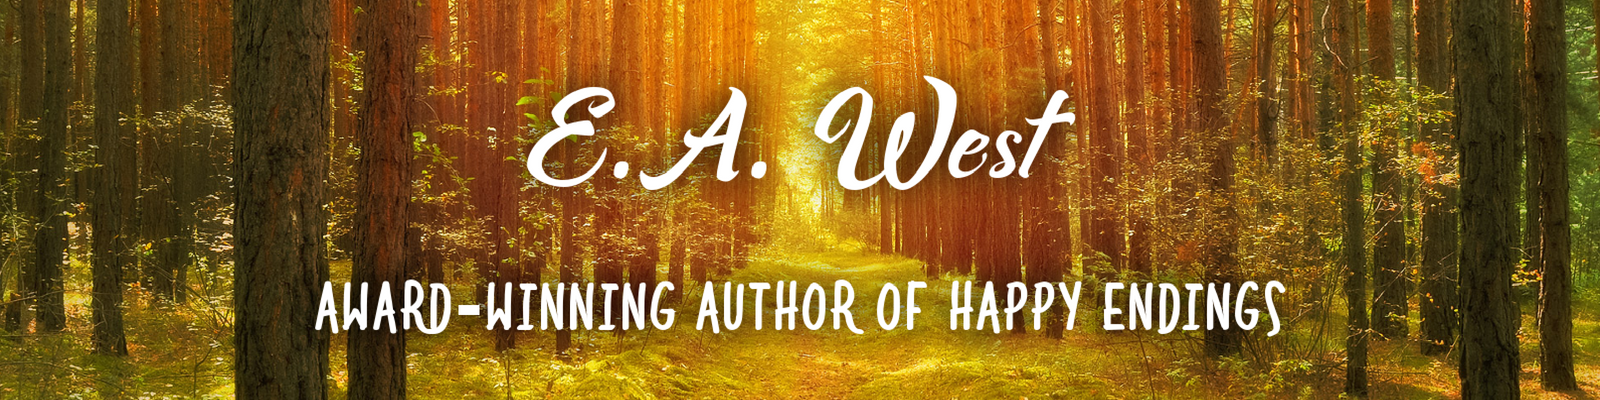 E.A. West website header